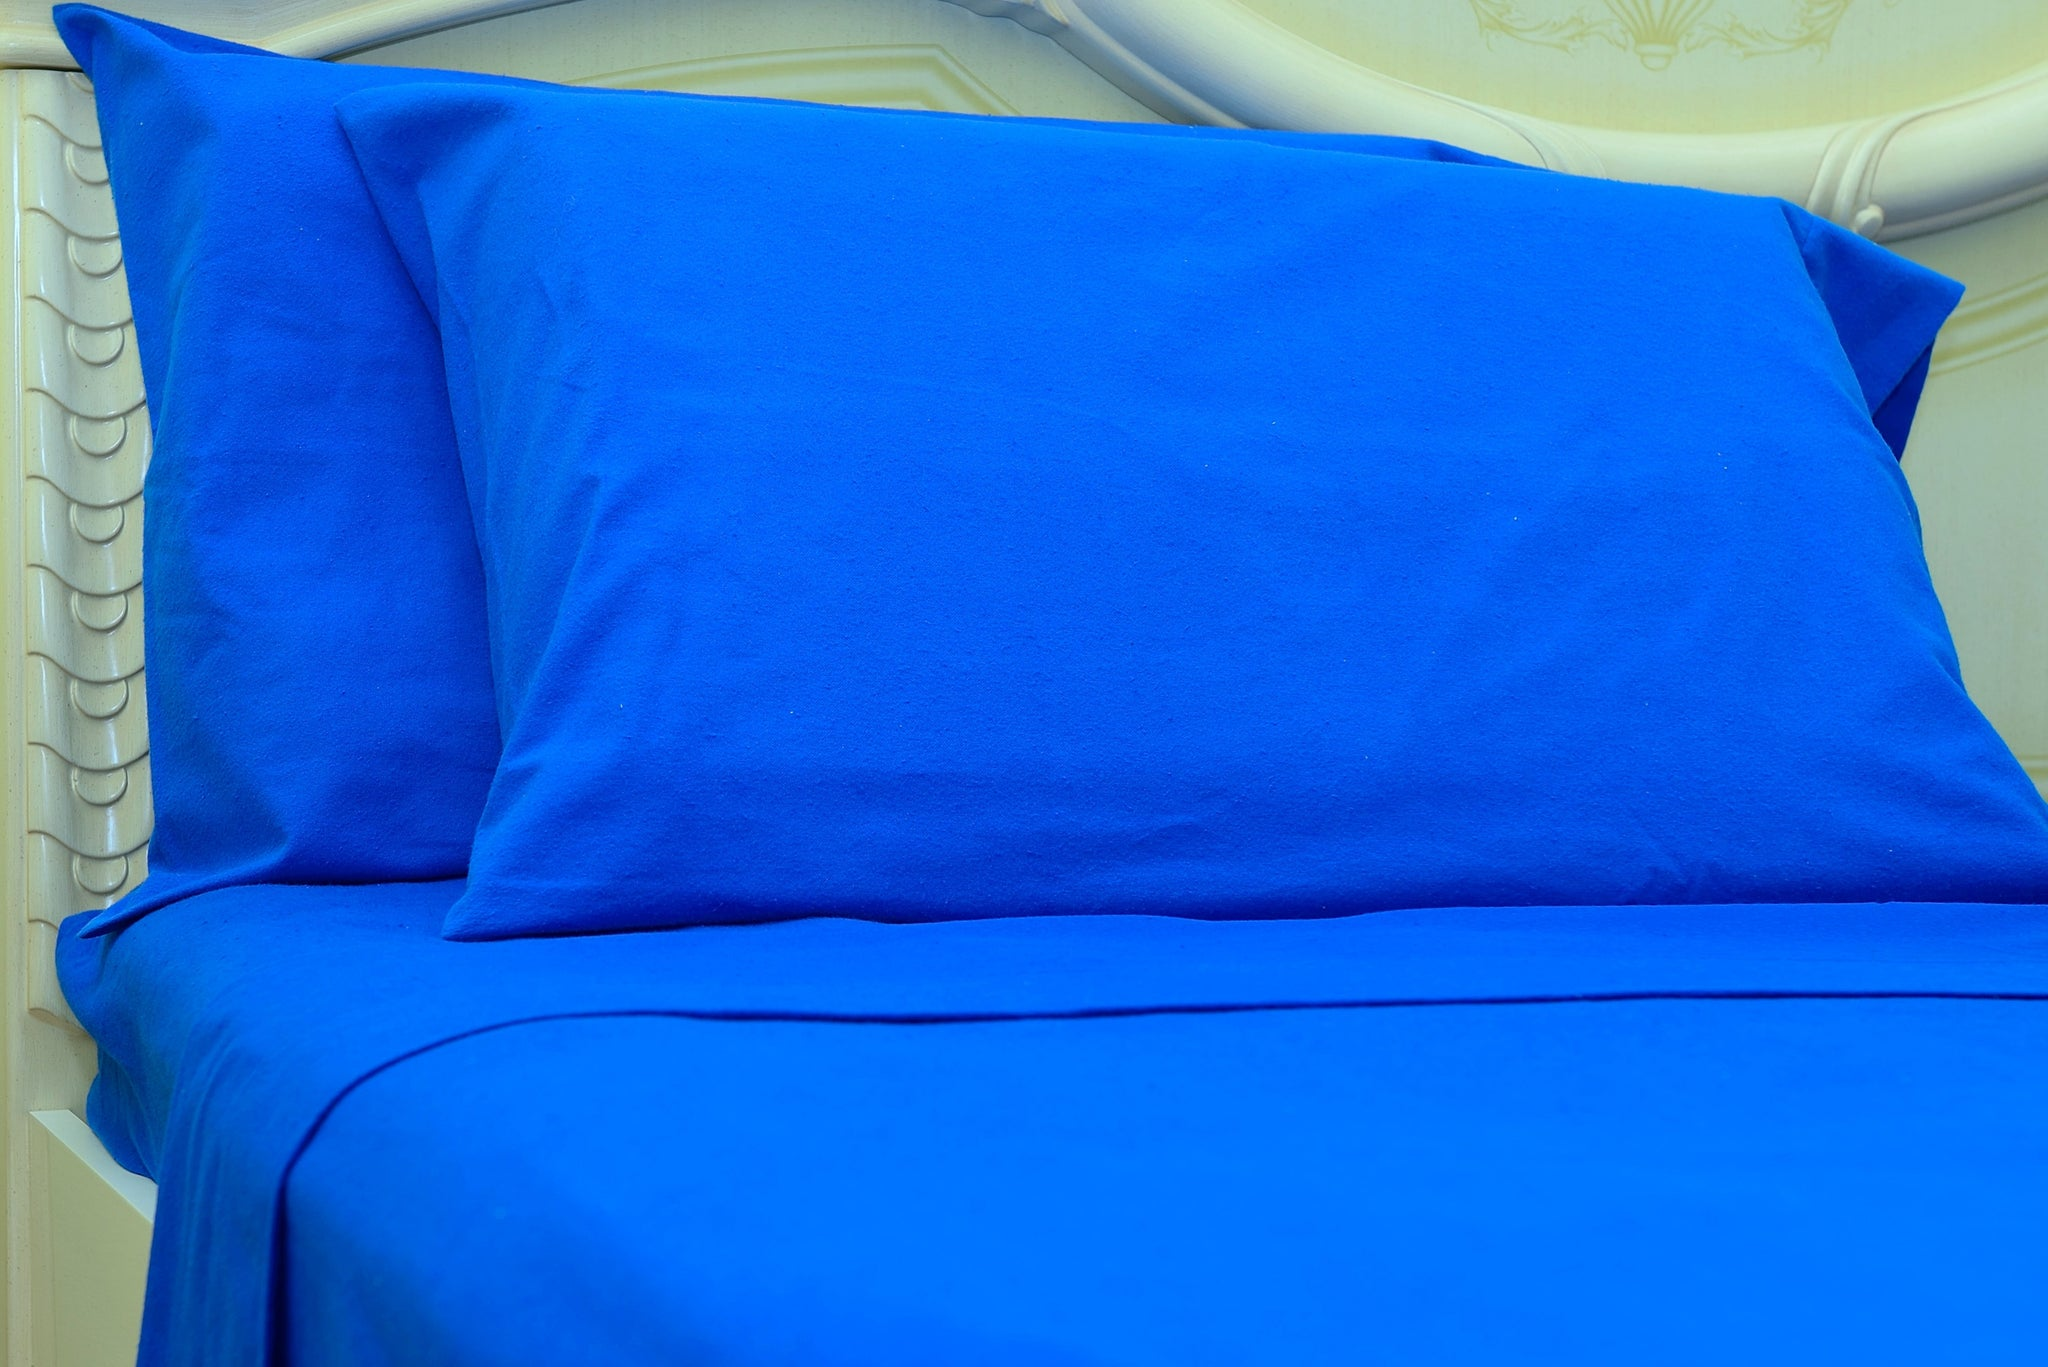 Flannel Fitted Sheet - %100 Cotton, Brushed, Top Sheet -Classic Blue- Queen Size